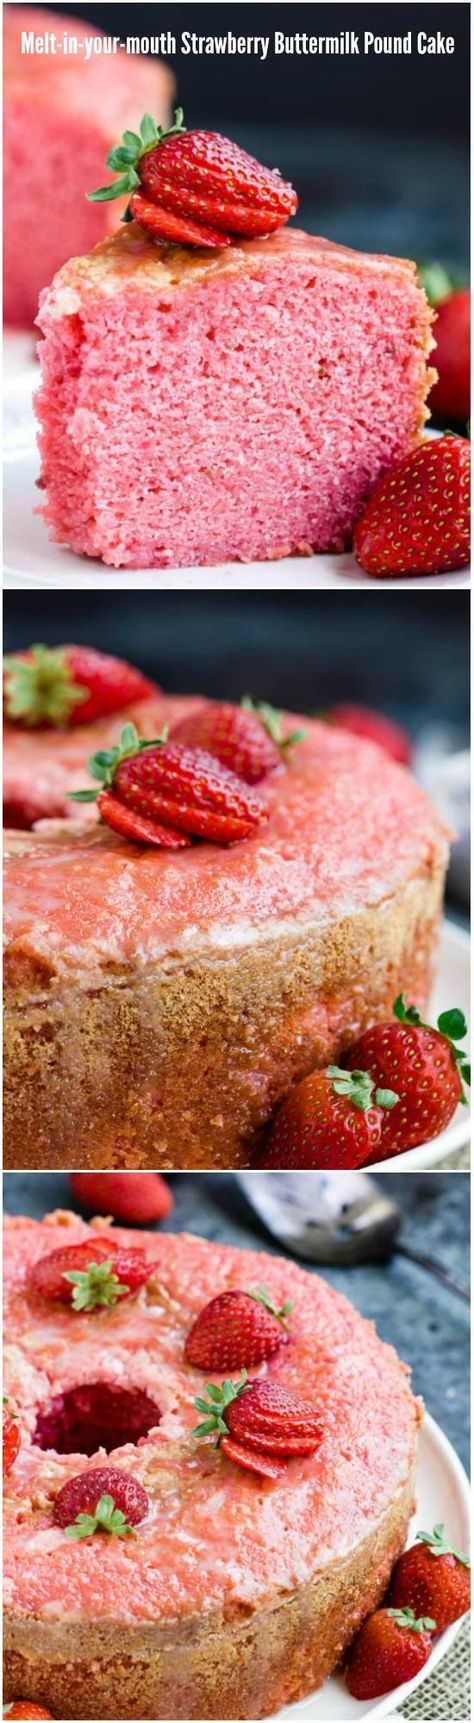 Melt In Your Mouth Strawberry Buttermilk Pound Cake Is Simply Amazing The Intense Strawberry Flavor A Buttermilk Pound Cake Dessert Recipes Strawberry Recipes